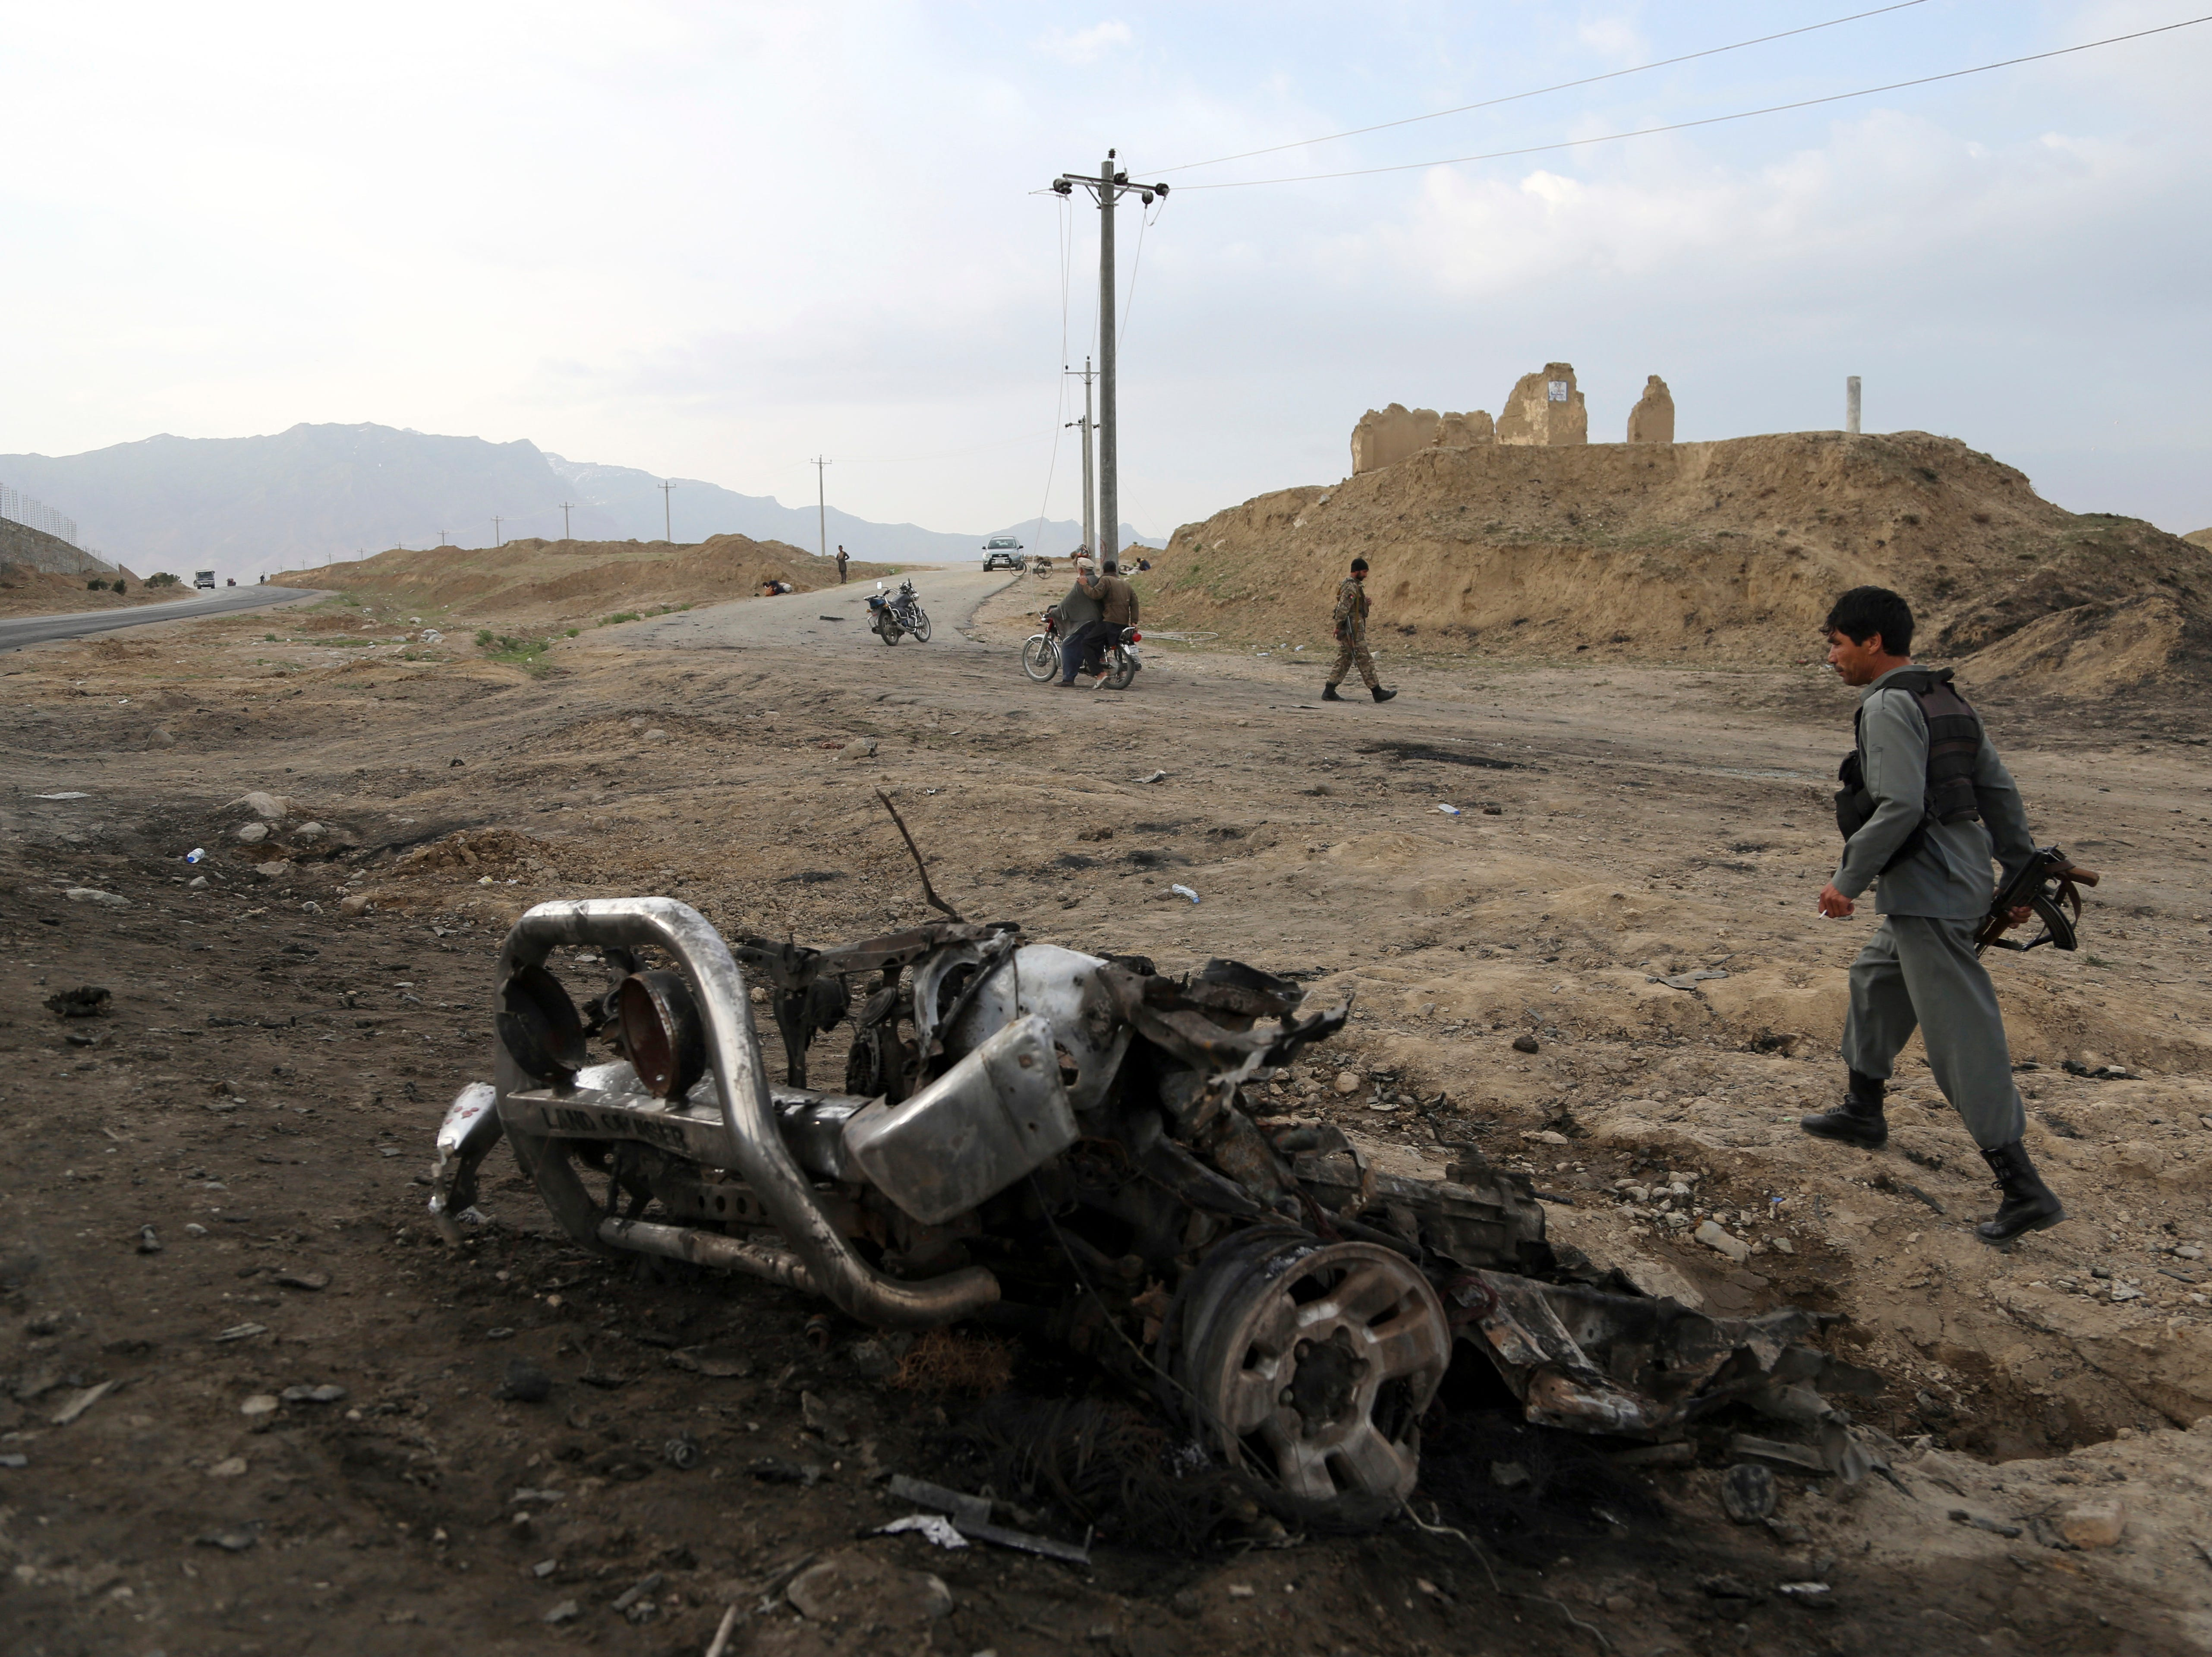 A member of Afghan security force walks at the site of Monday's suicide attack near the Bagram Air Base, north of Kabul, Afghanistan, Tuesday, April 9, 2019. Three American service members were killed when their convoy hit a roadside bomb on Monday near the main U.S. base in Afghanistan, the U.S. forces said. The Taliban claimed responsibility for the attack.